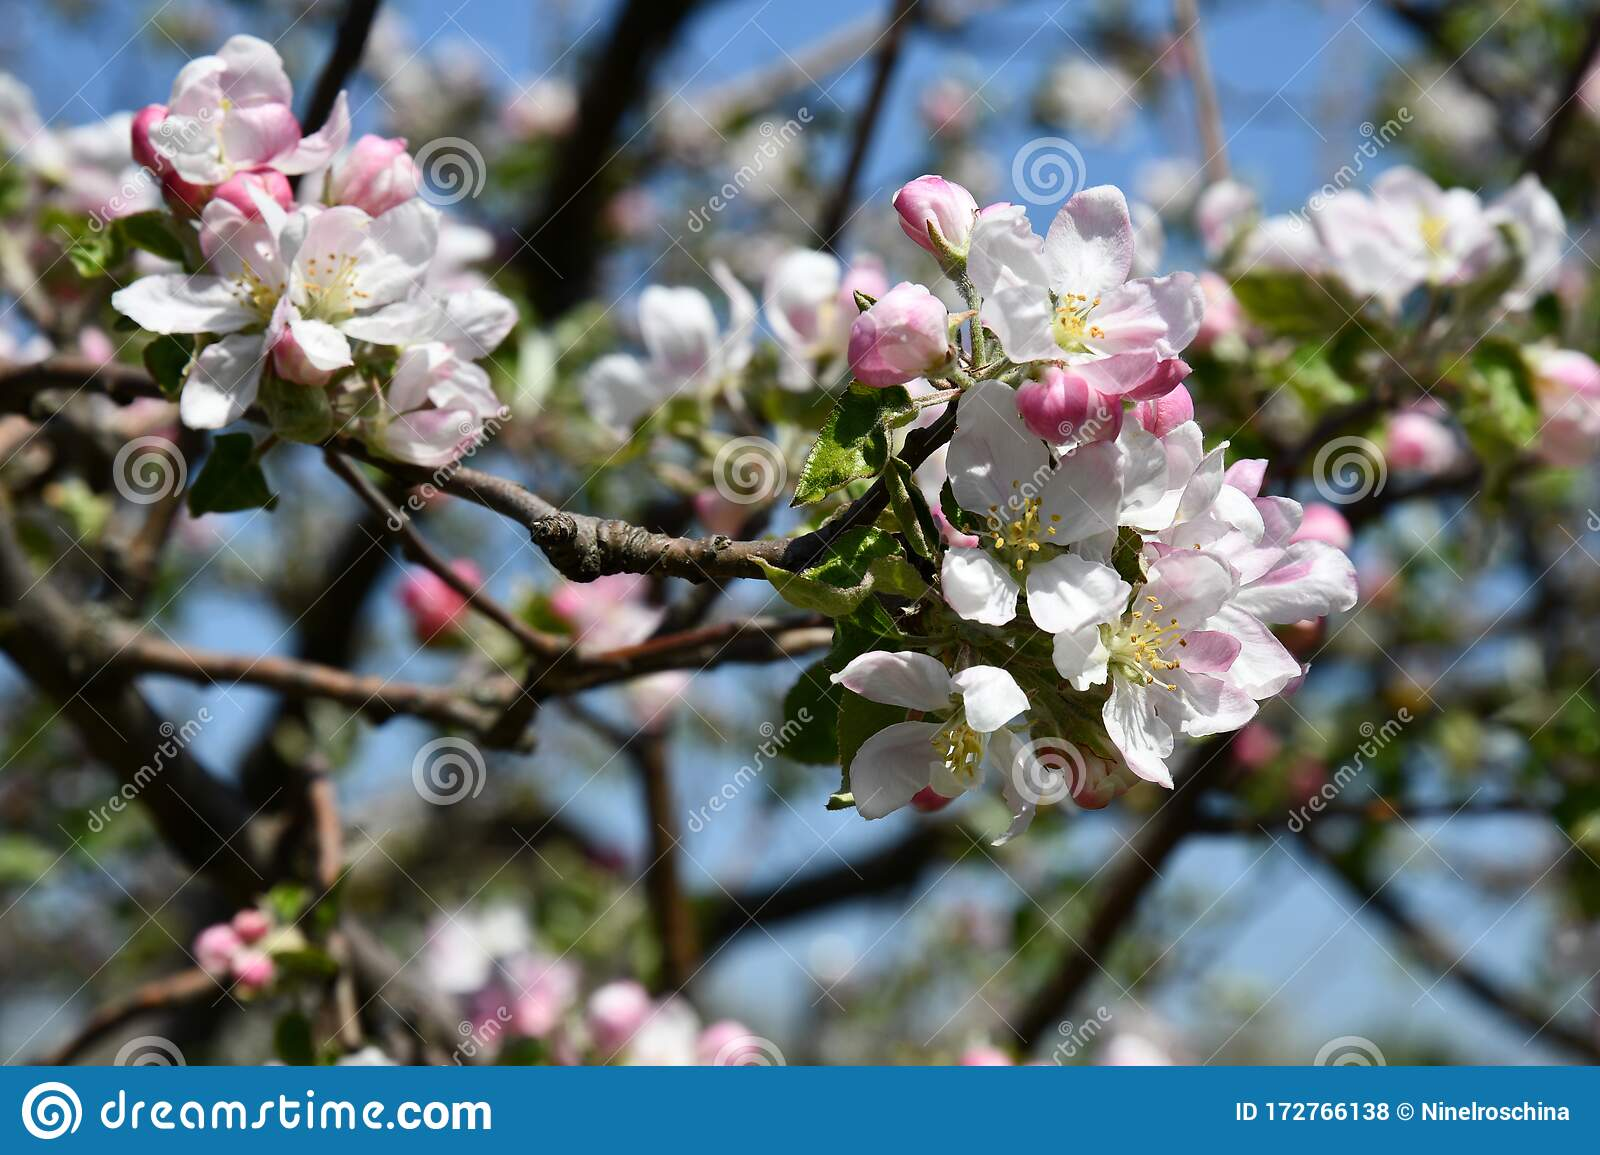 Floral Backdrop Of Beautiful Cherry Blossoms On Blurry Background Of Blue Sky White Pink Flowers Closeup Sakura Tree In Bloom Stock Photo Image Of Botanical Gardening 172766138